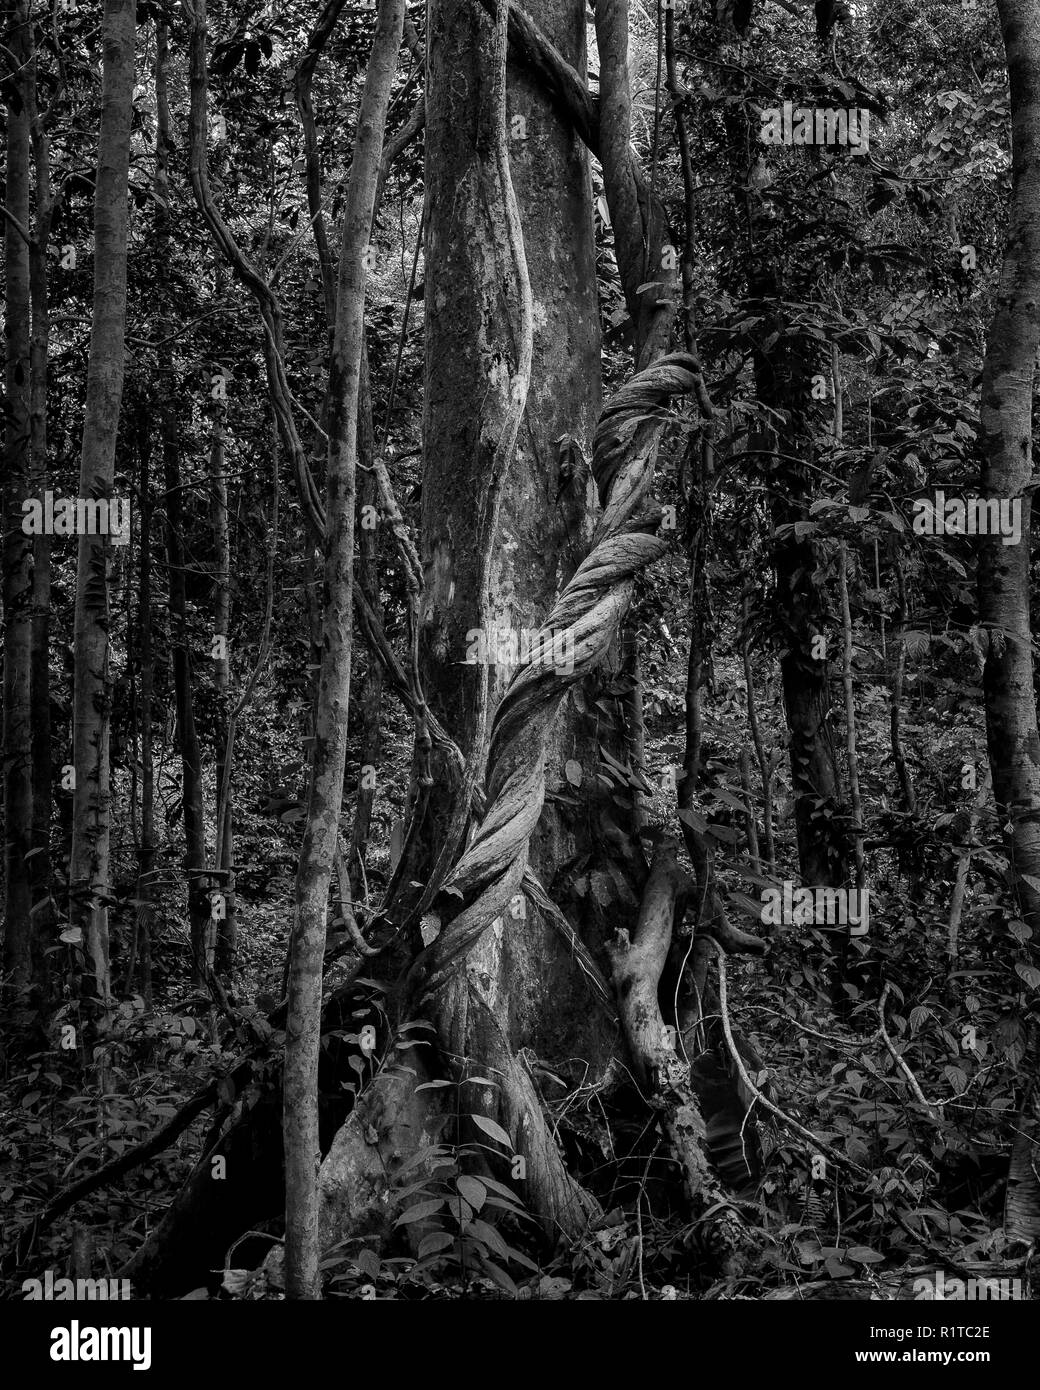 Black and white image of liana tree wrapping on another tree in the rainforest of malaysia